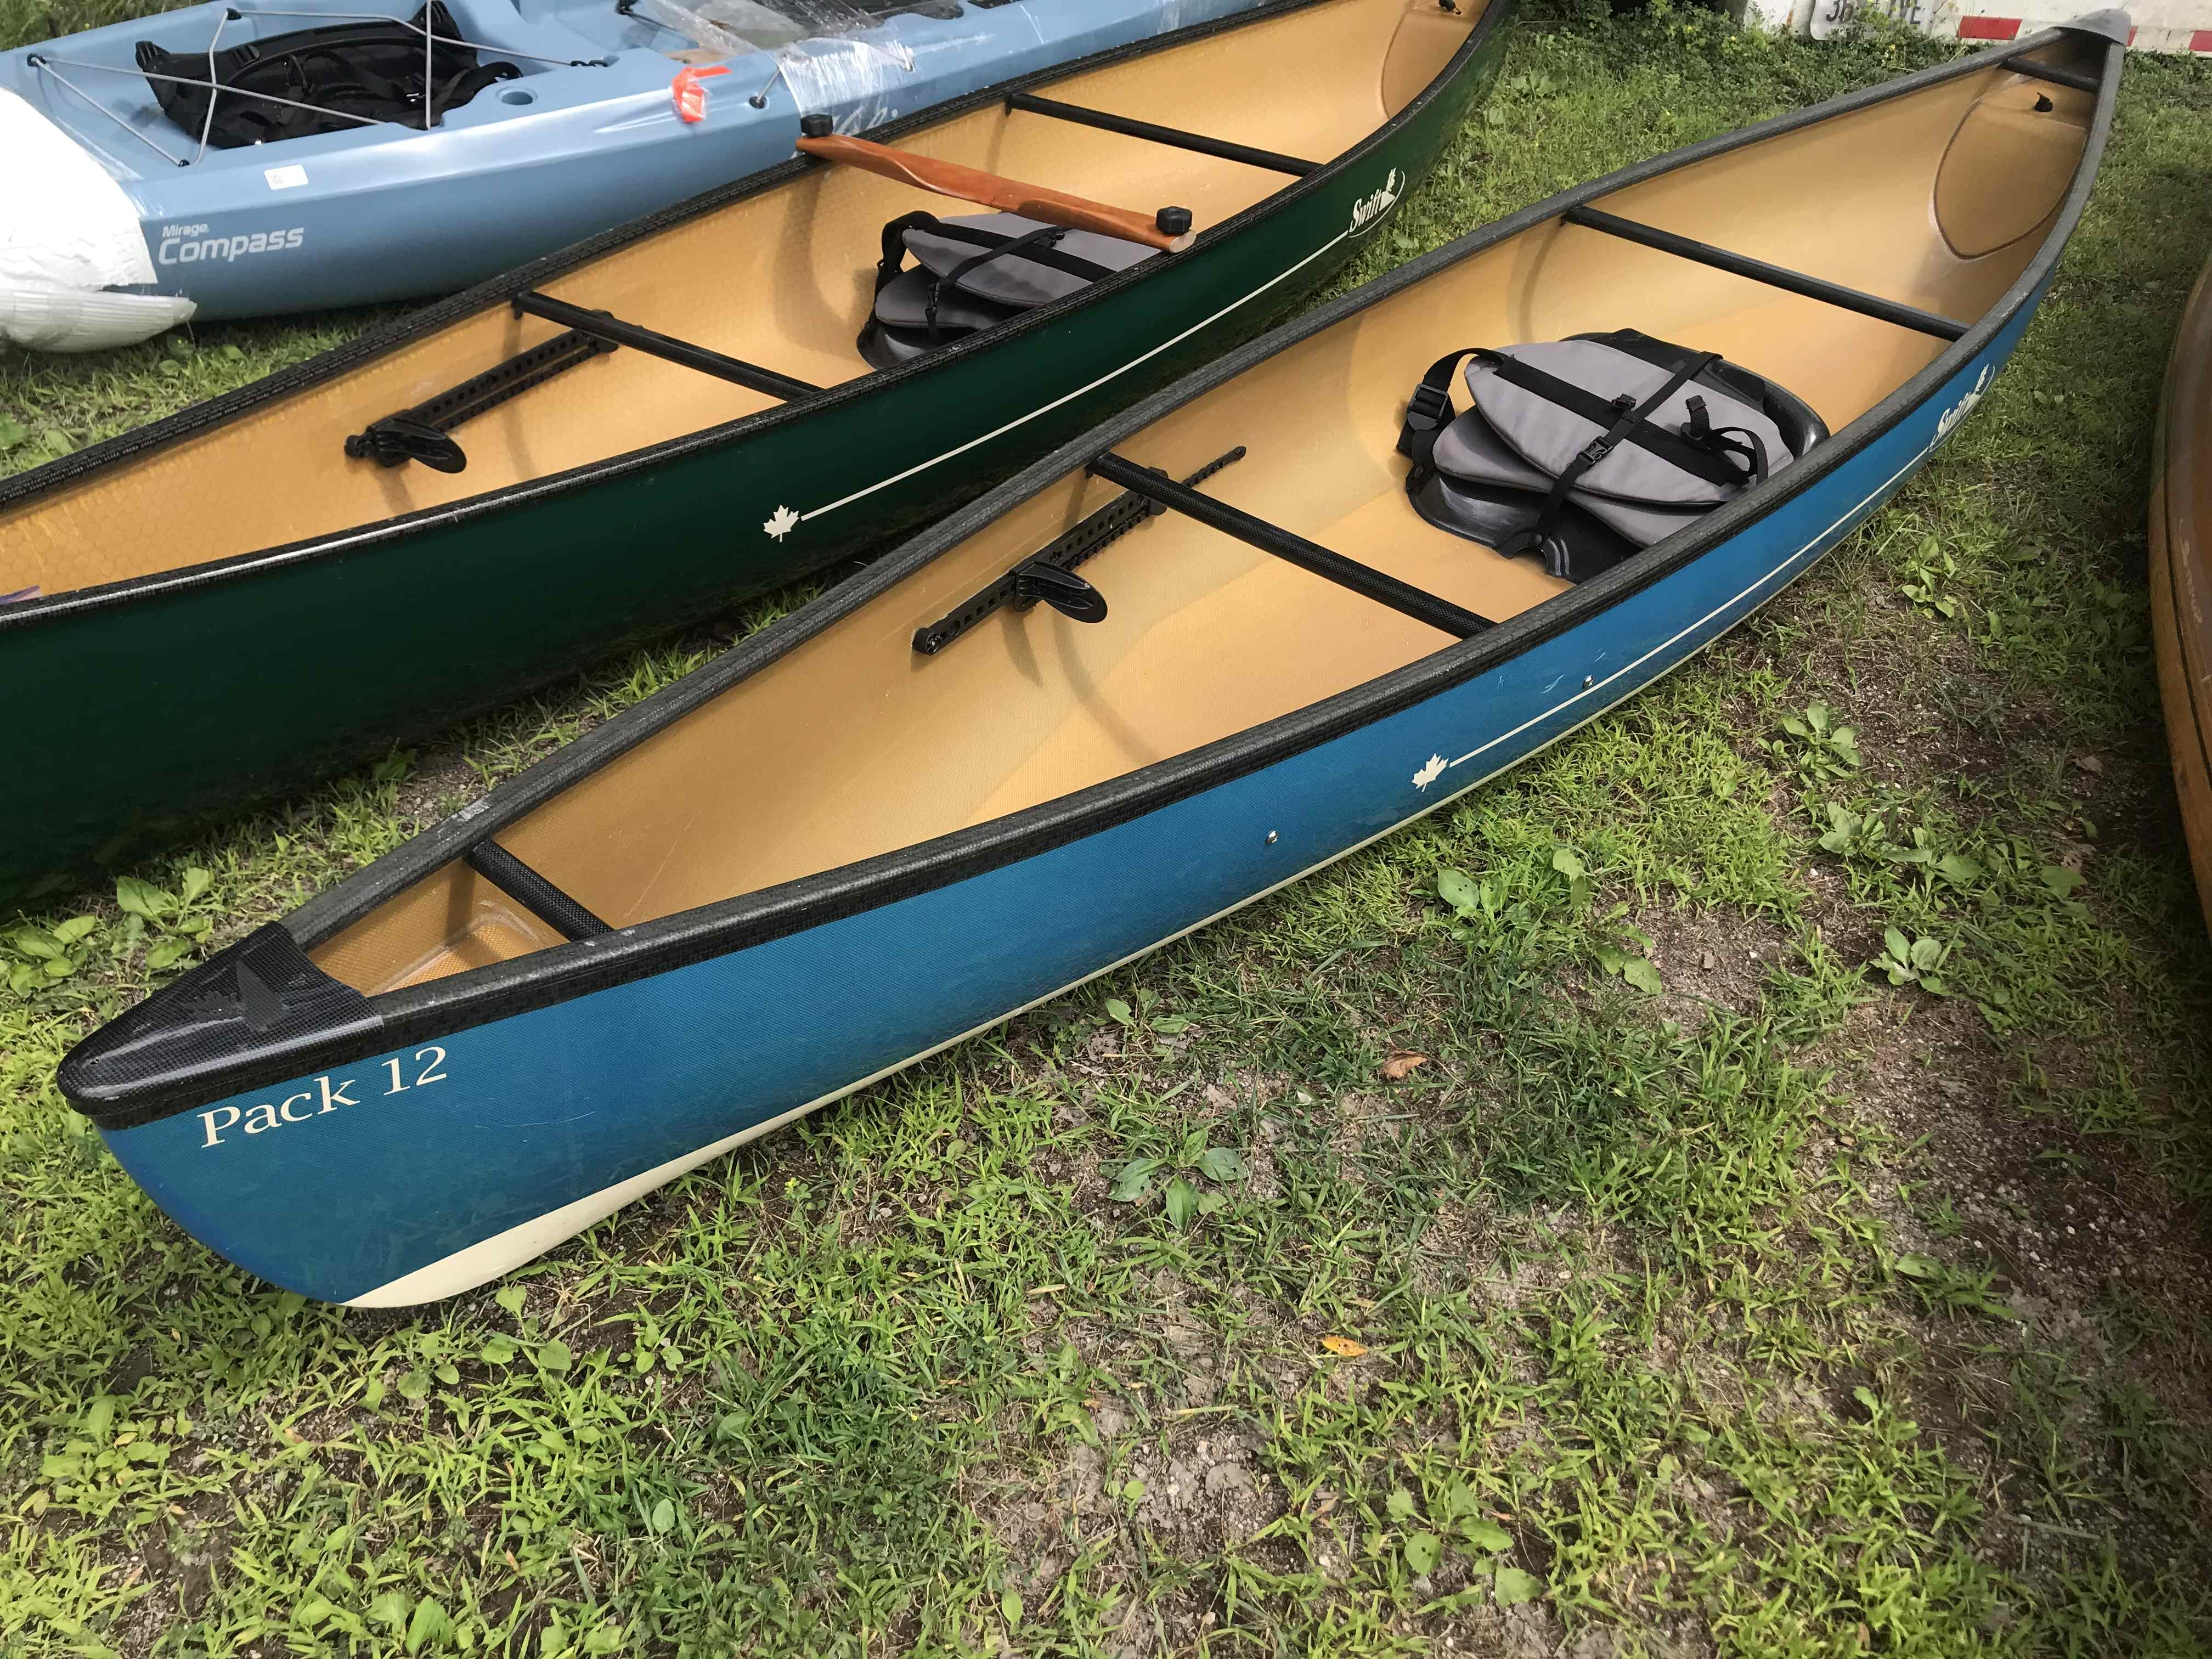 Used Canoe & Demo Clearance - Algonquin Outfitters - Your